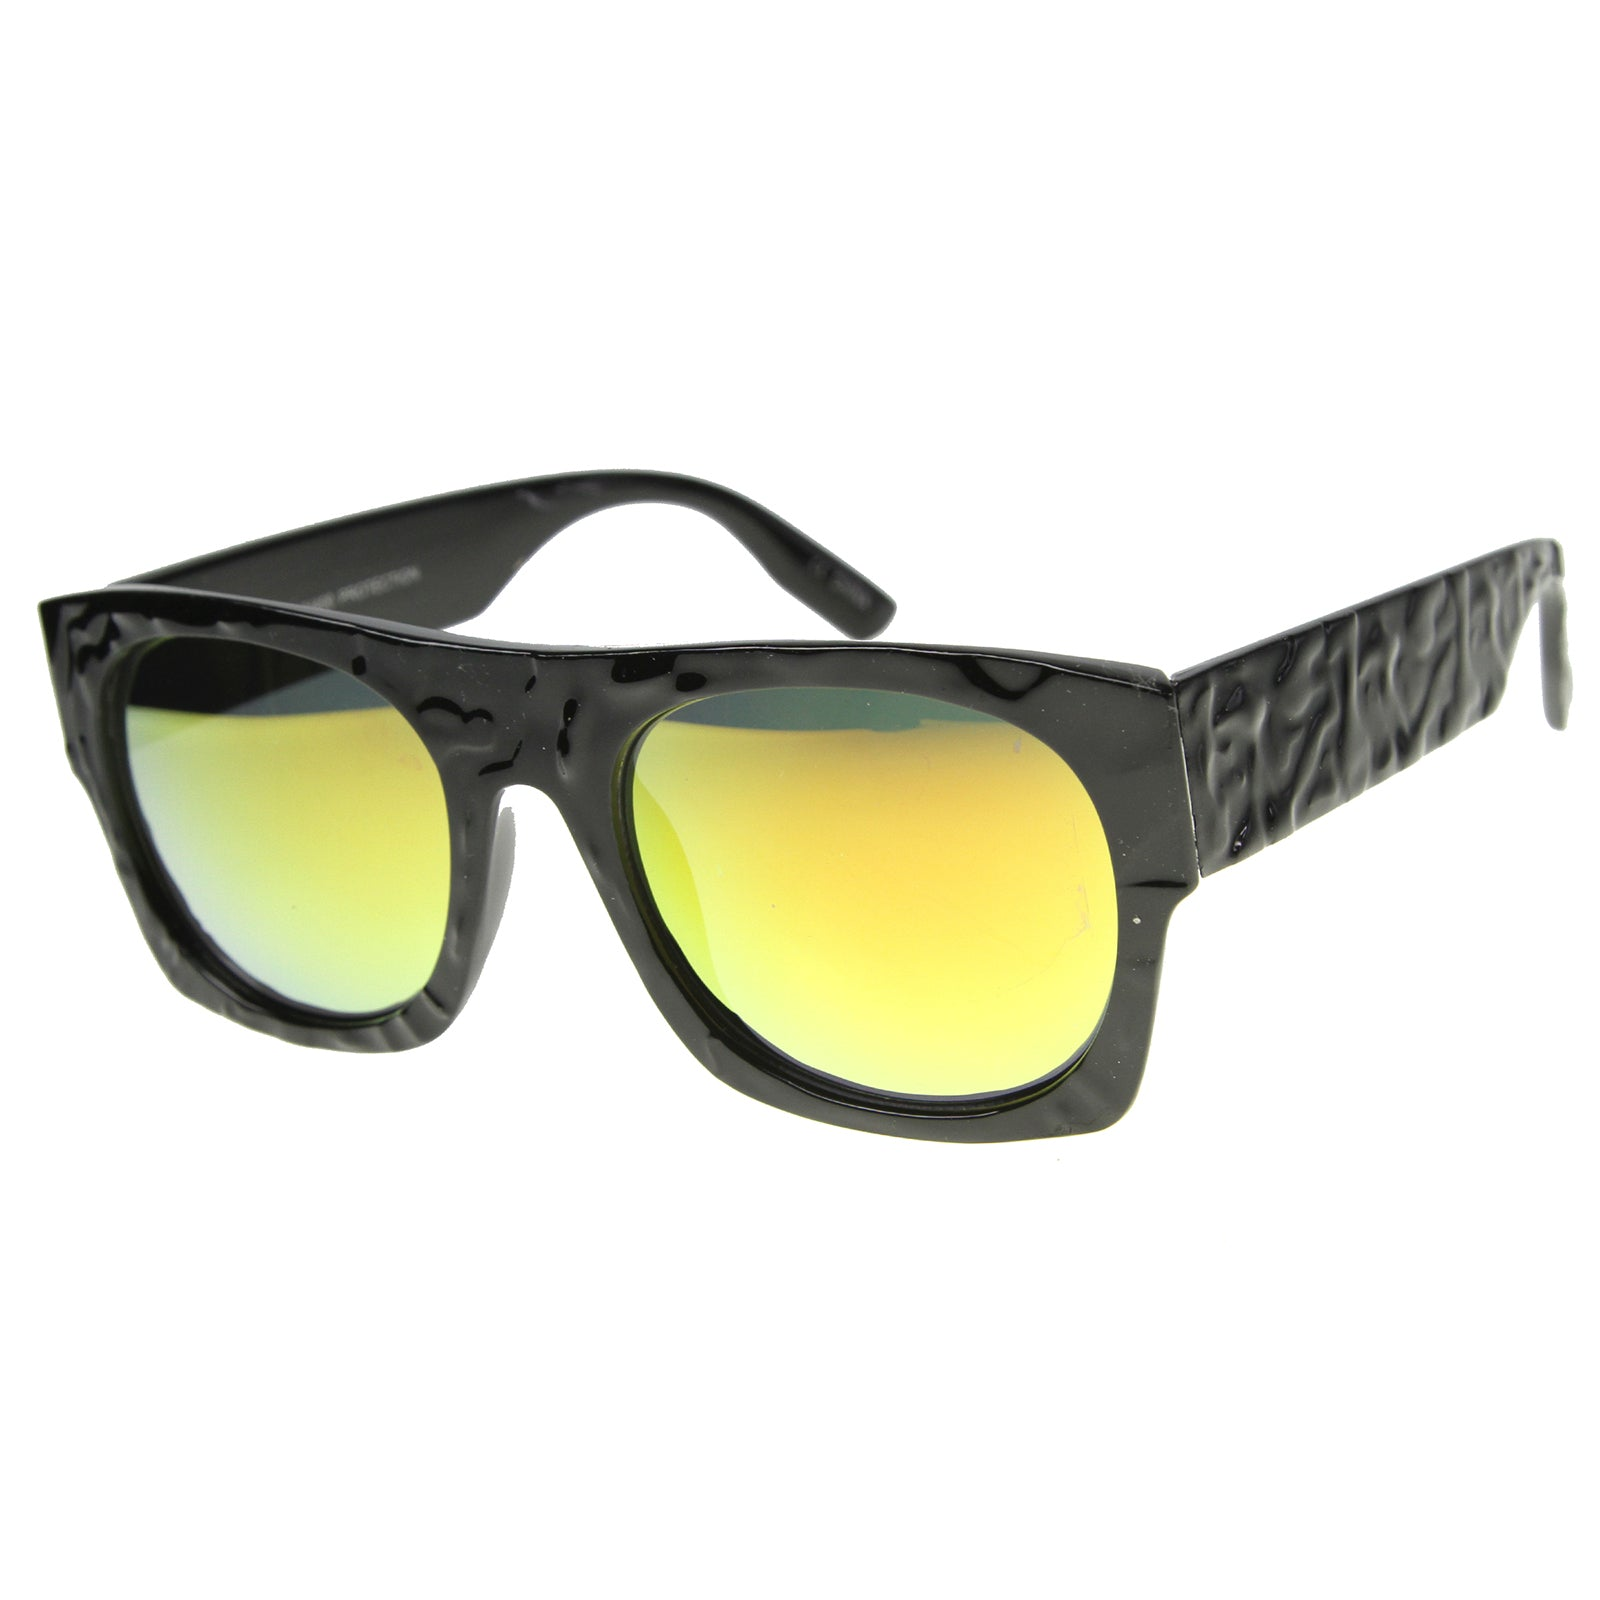 Unisex Rectangular Sunglasses With UV400 Protected Mirrored Lens - sunglass.la - 7